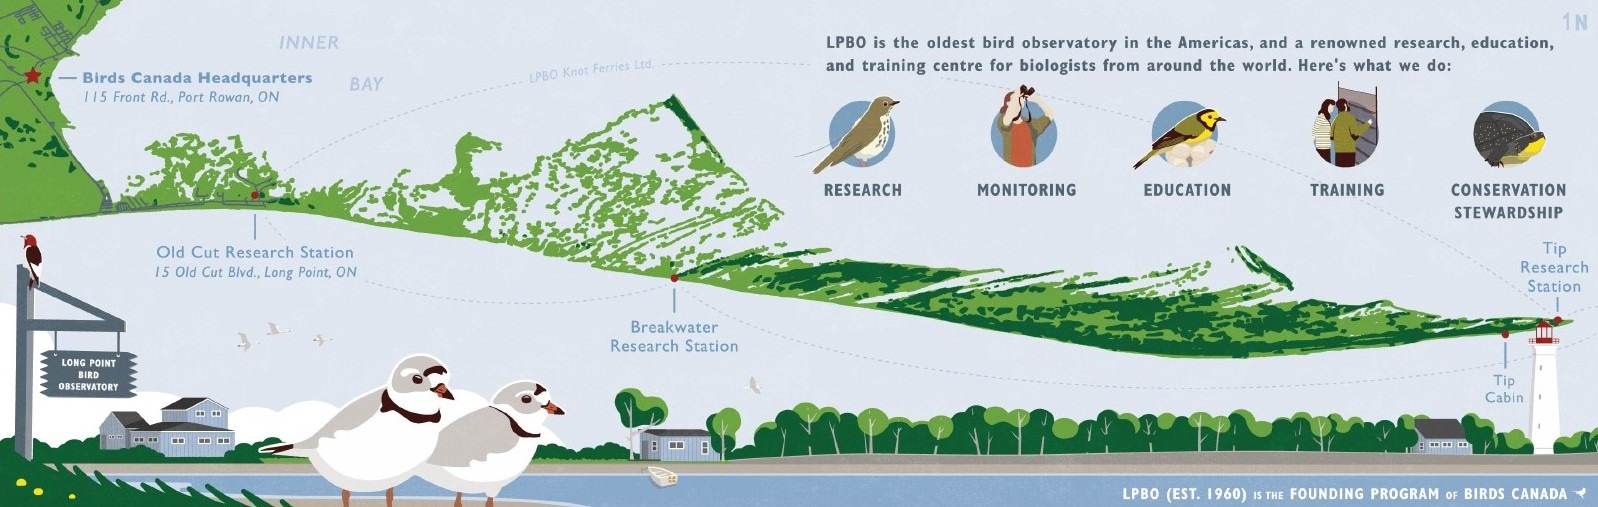 A cheerful, colourful graphic that shows a map of the Long Point Peninsula and the location of three Long Point Bird Observatory research stations: The Tip, Breakwater, and Old Cut.